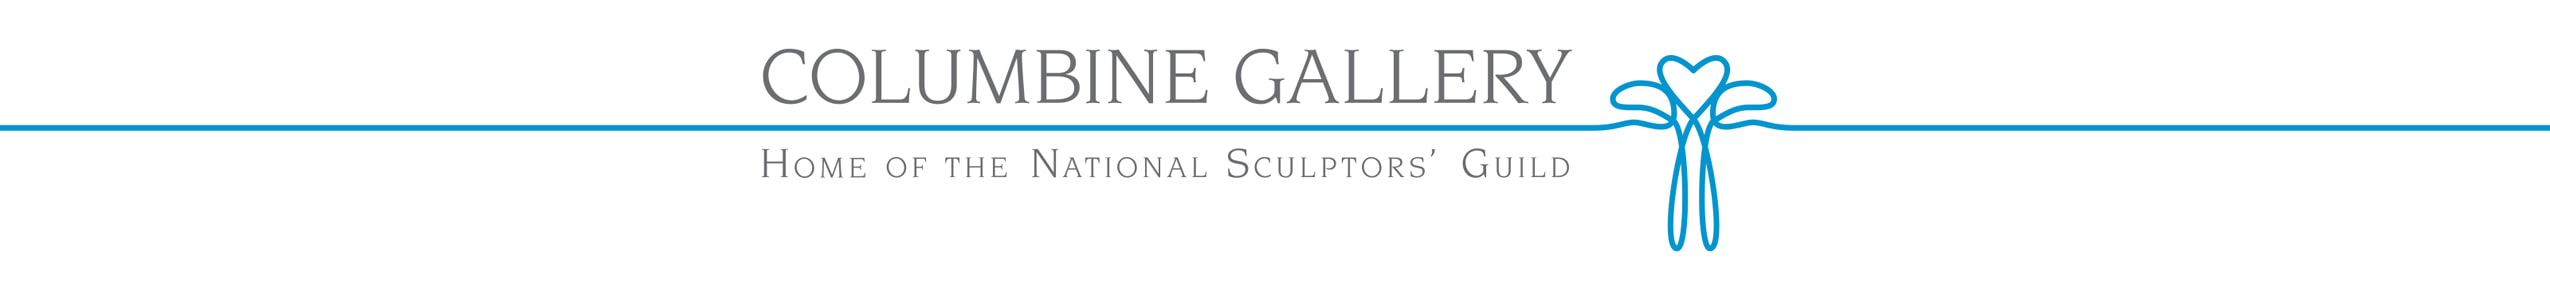 Columbine is the Colorado State flower and symbol for Spirit. Our Loveland location of Columbine Art Gallery and the National Sculptors' Guild has quickly become the largest original fine art source in Colorado located across the street from Sculpture in the Park events at Benson Park, we feature artwork by 50 represented artists year round, ship worldwide.